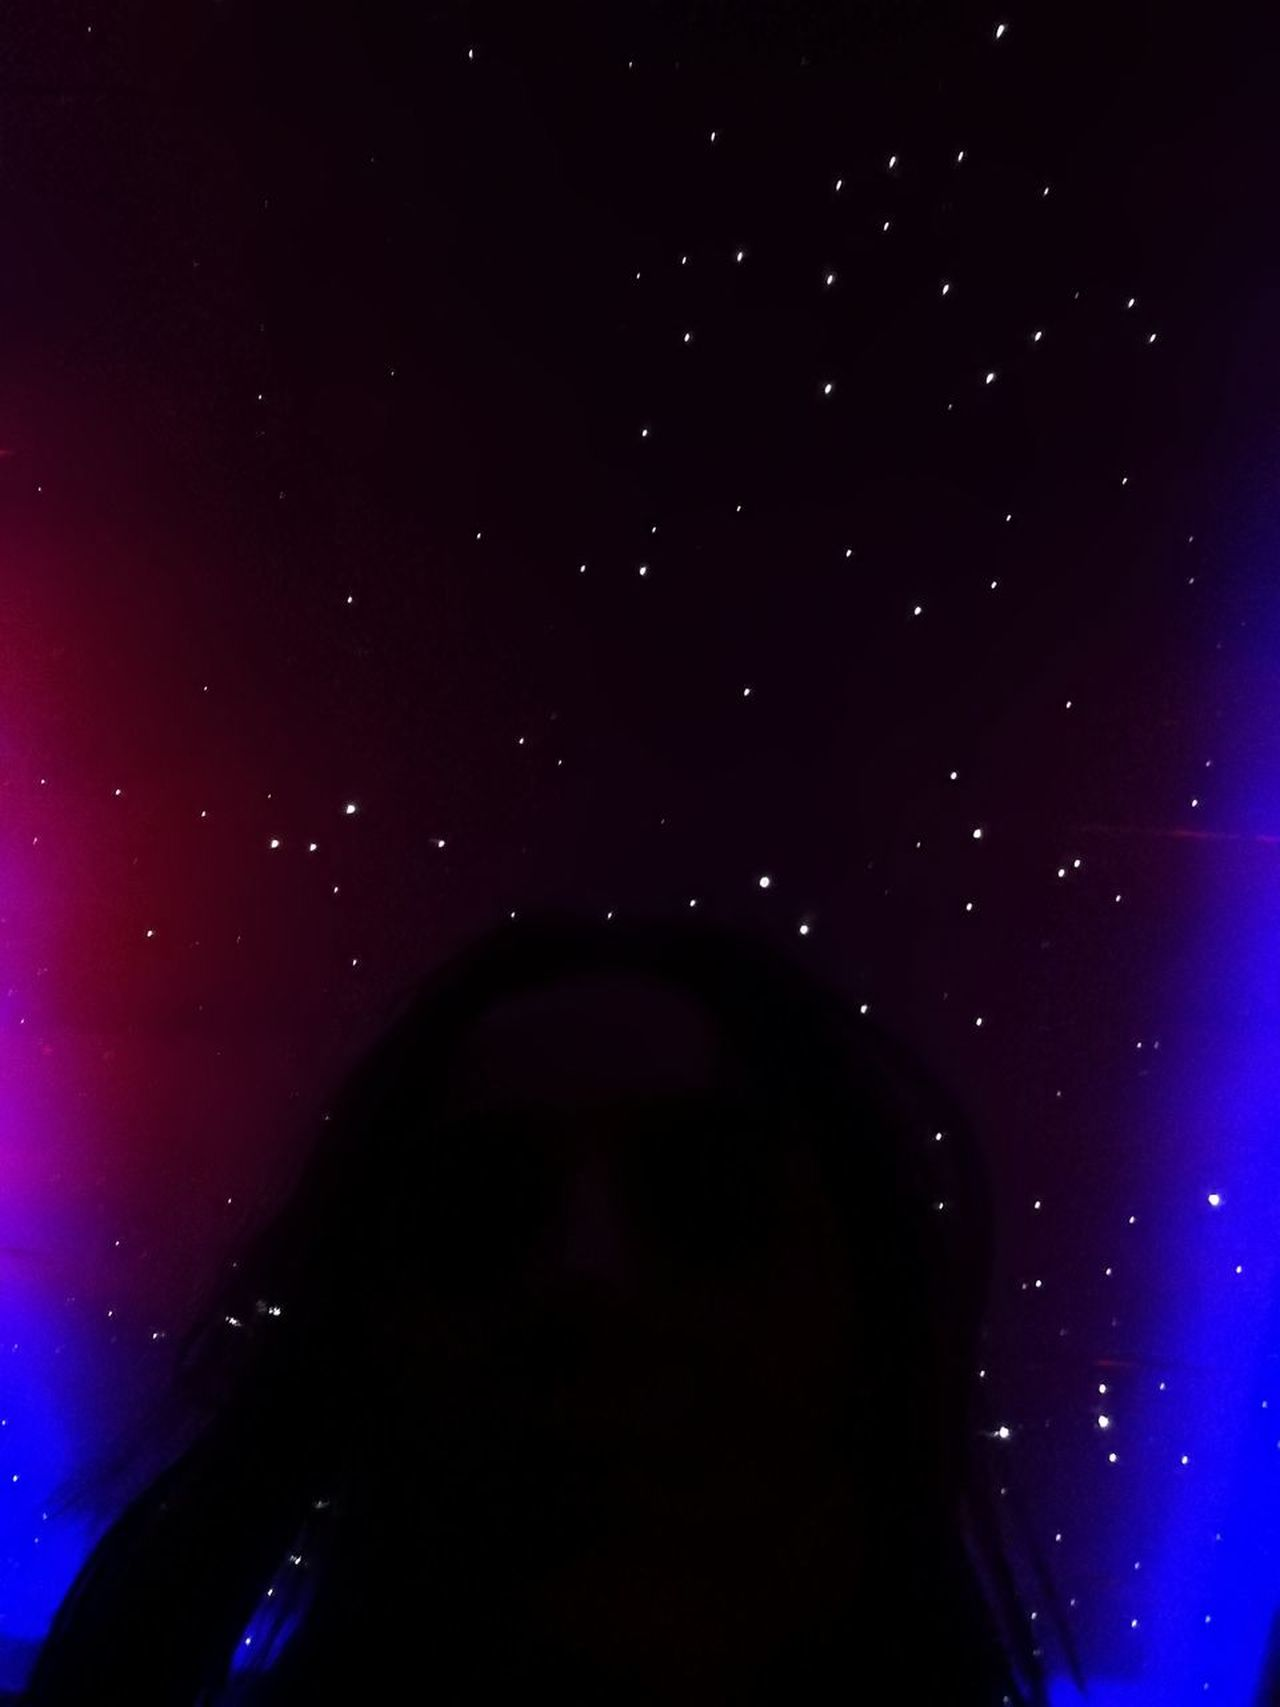 EyeEm Selects Starry Sky Indoors  Selfıe Upper View Light And Shadow